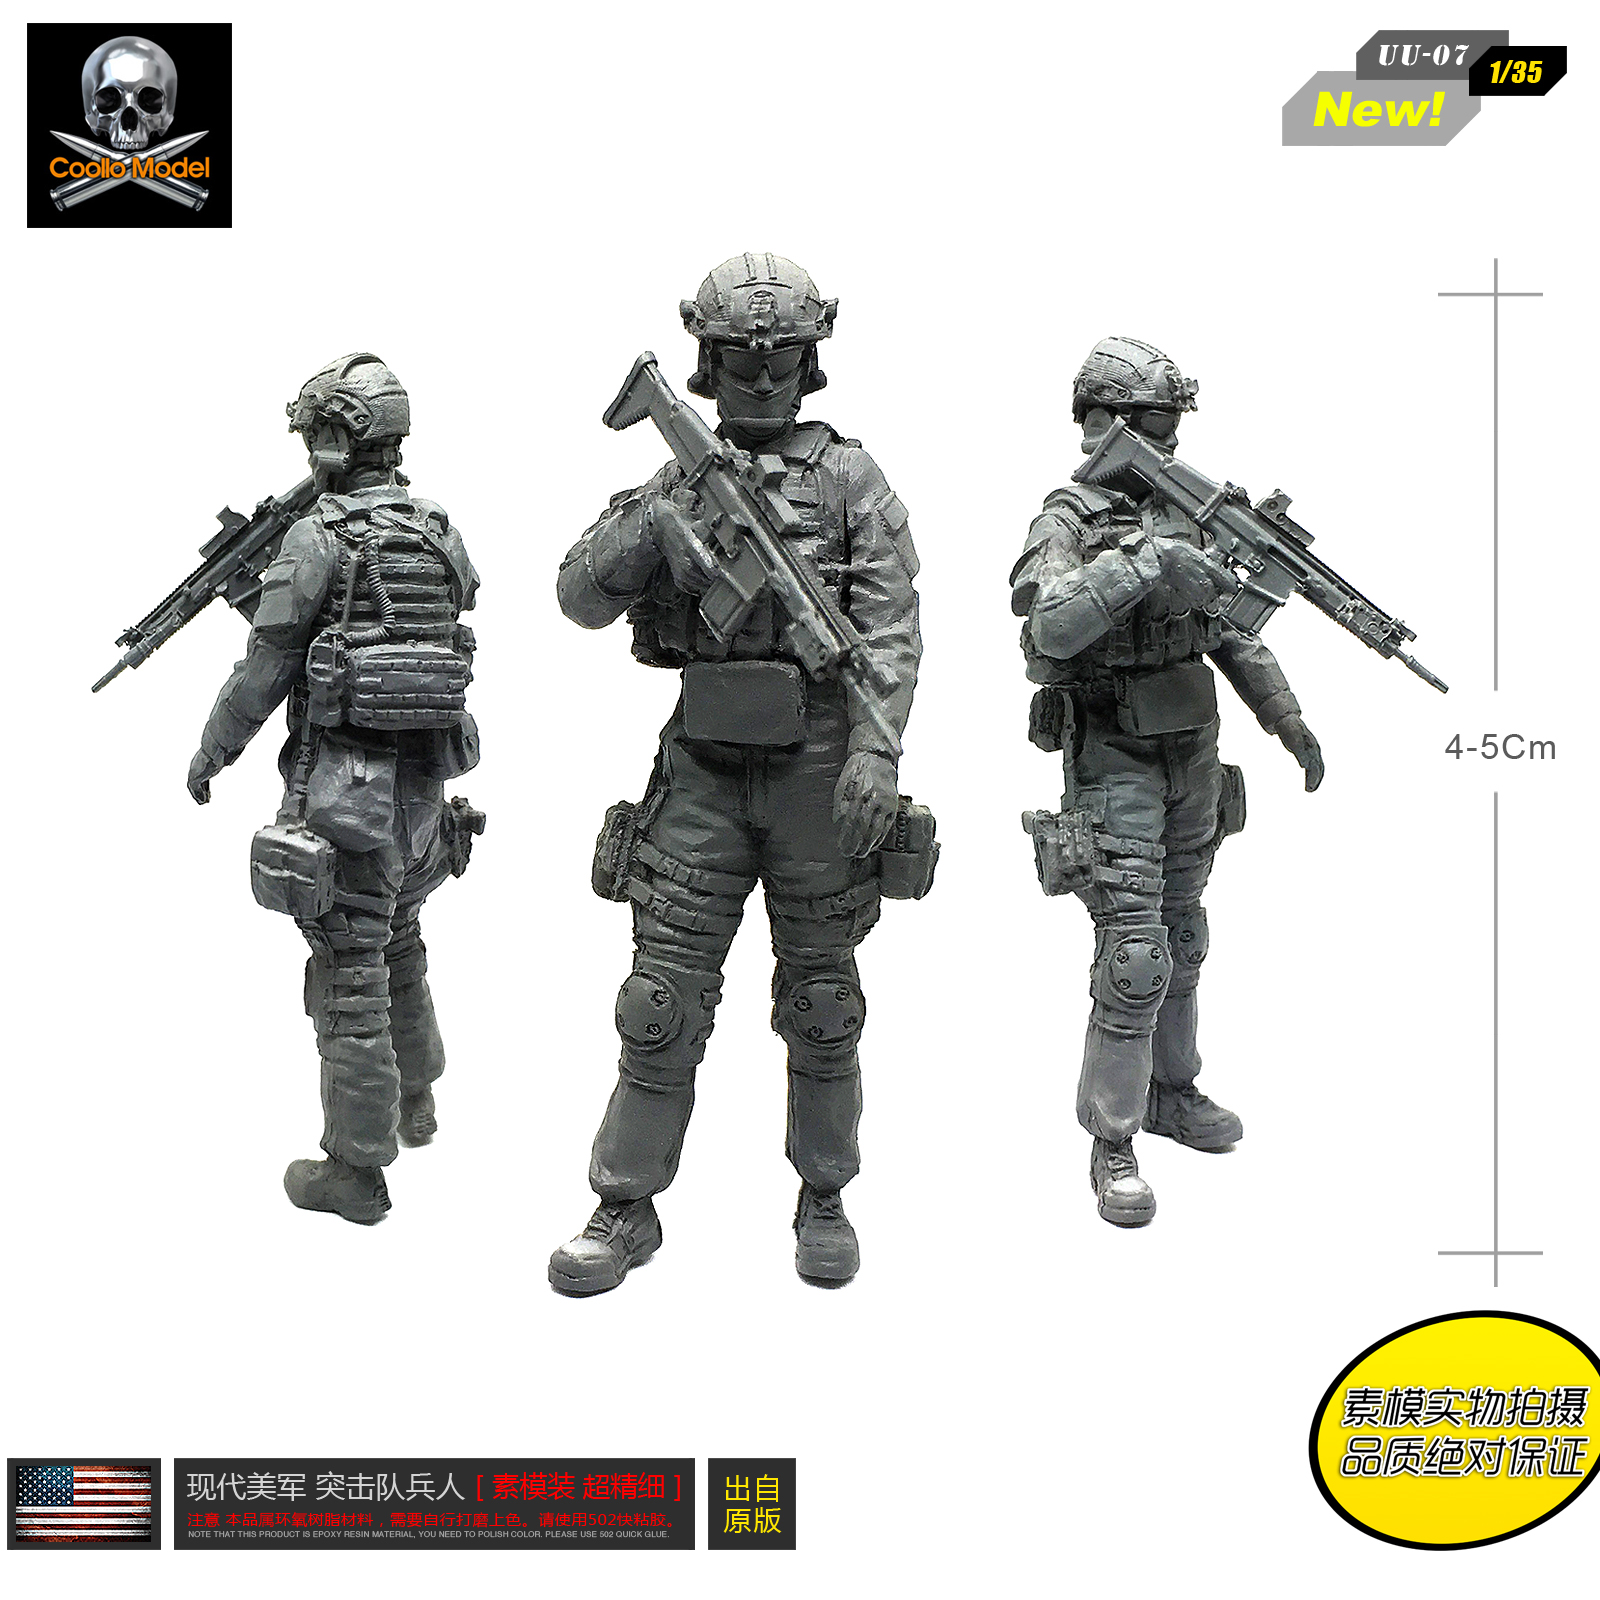 1/35 Figure Kits U.s. Special Commando Automatic Rifleman  Resin Soldier Army Soldier Self-assembled UU-07